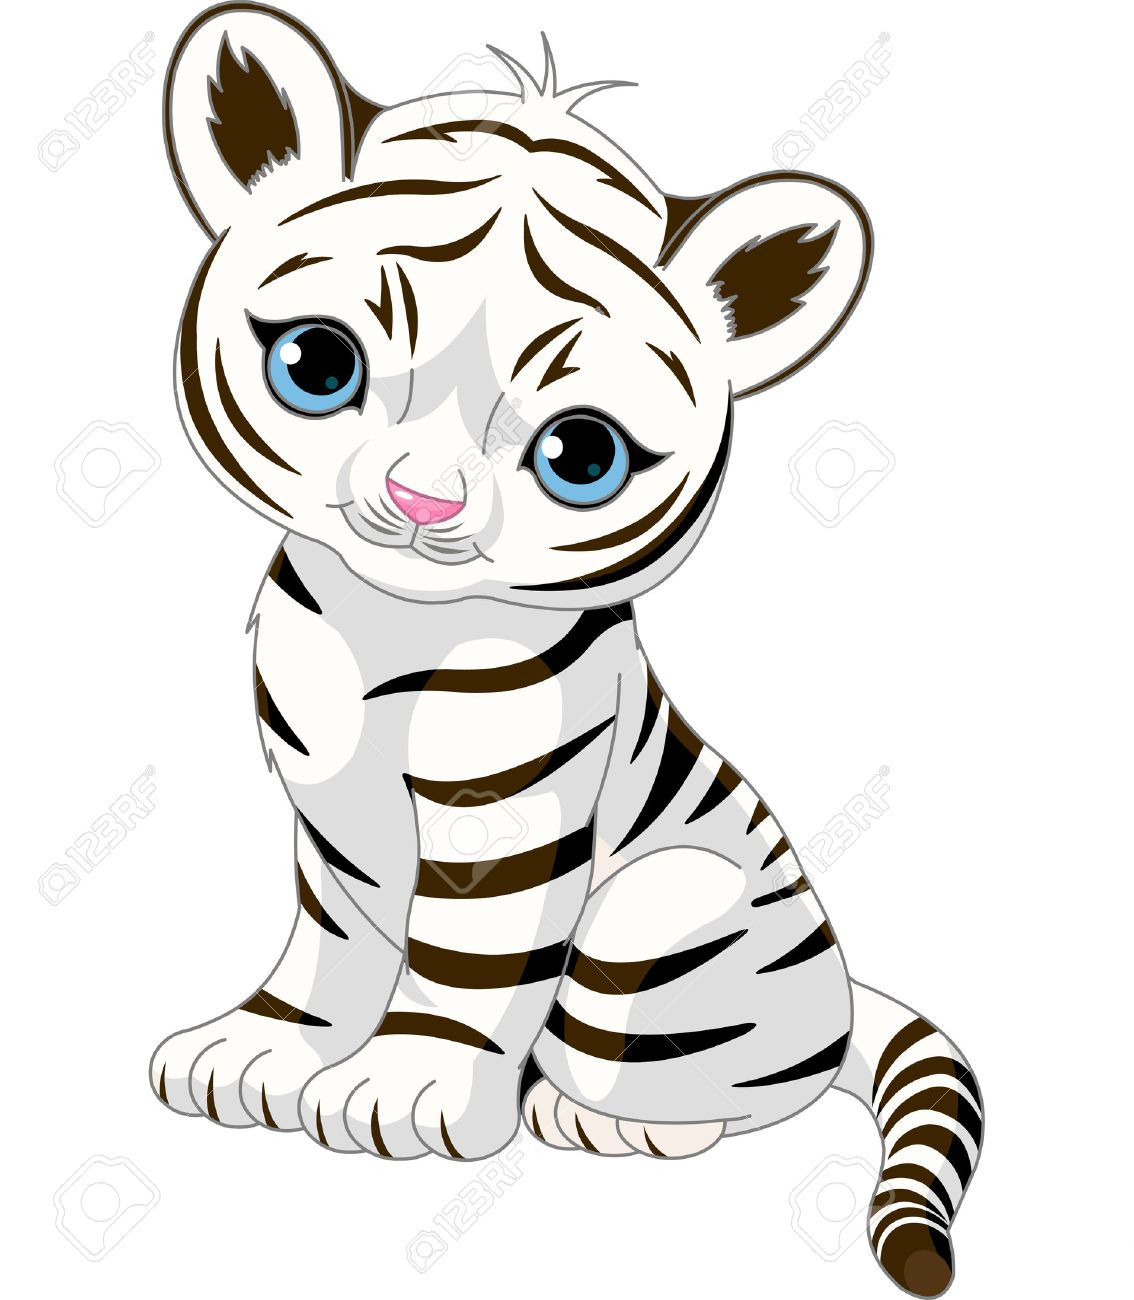 Baby clipart tigers. White tiger drawing at